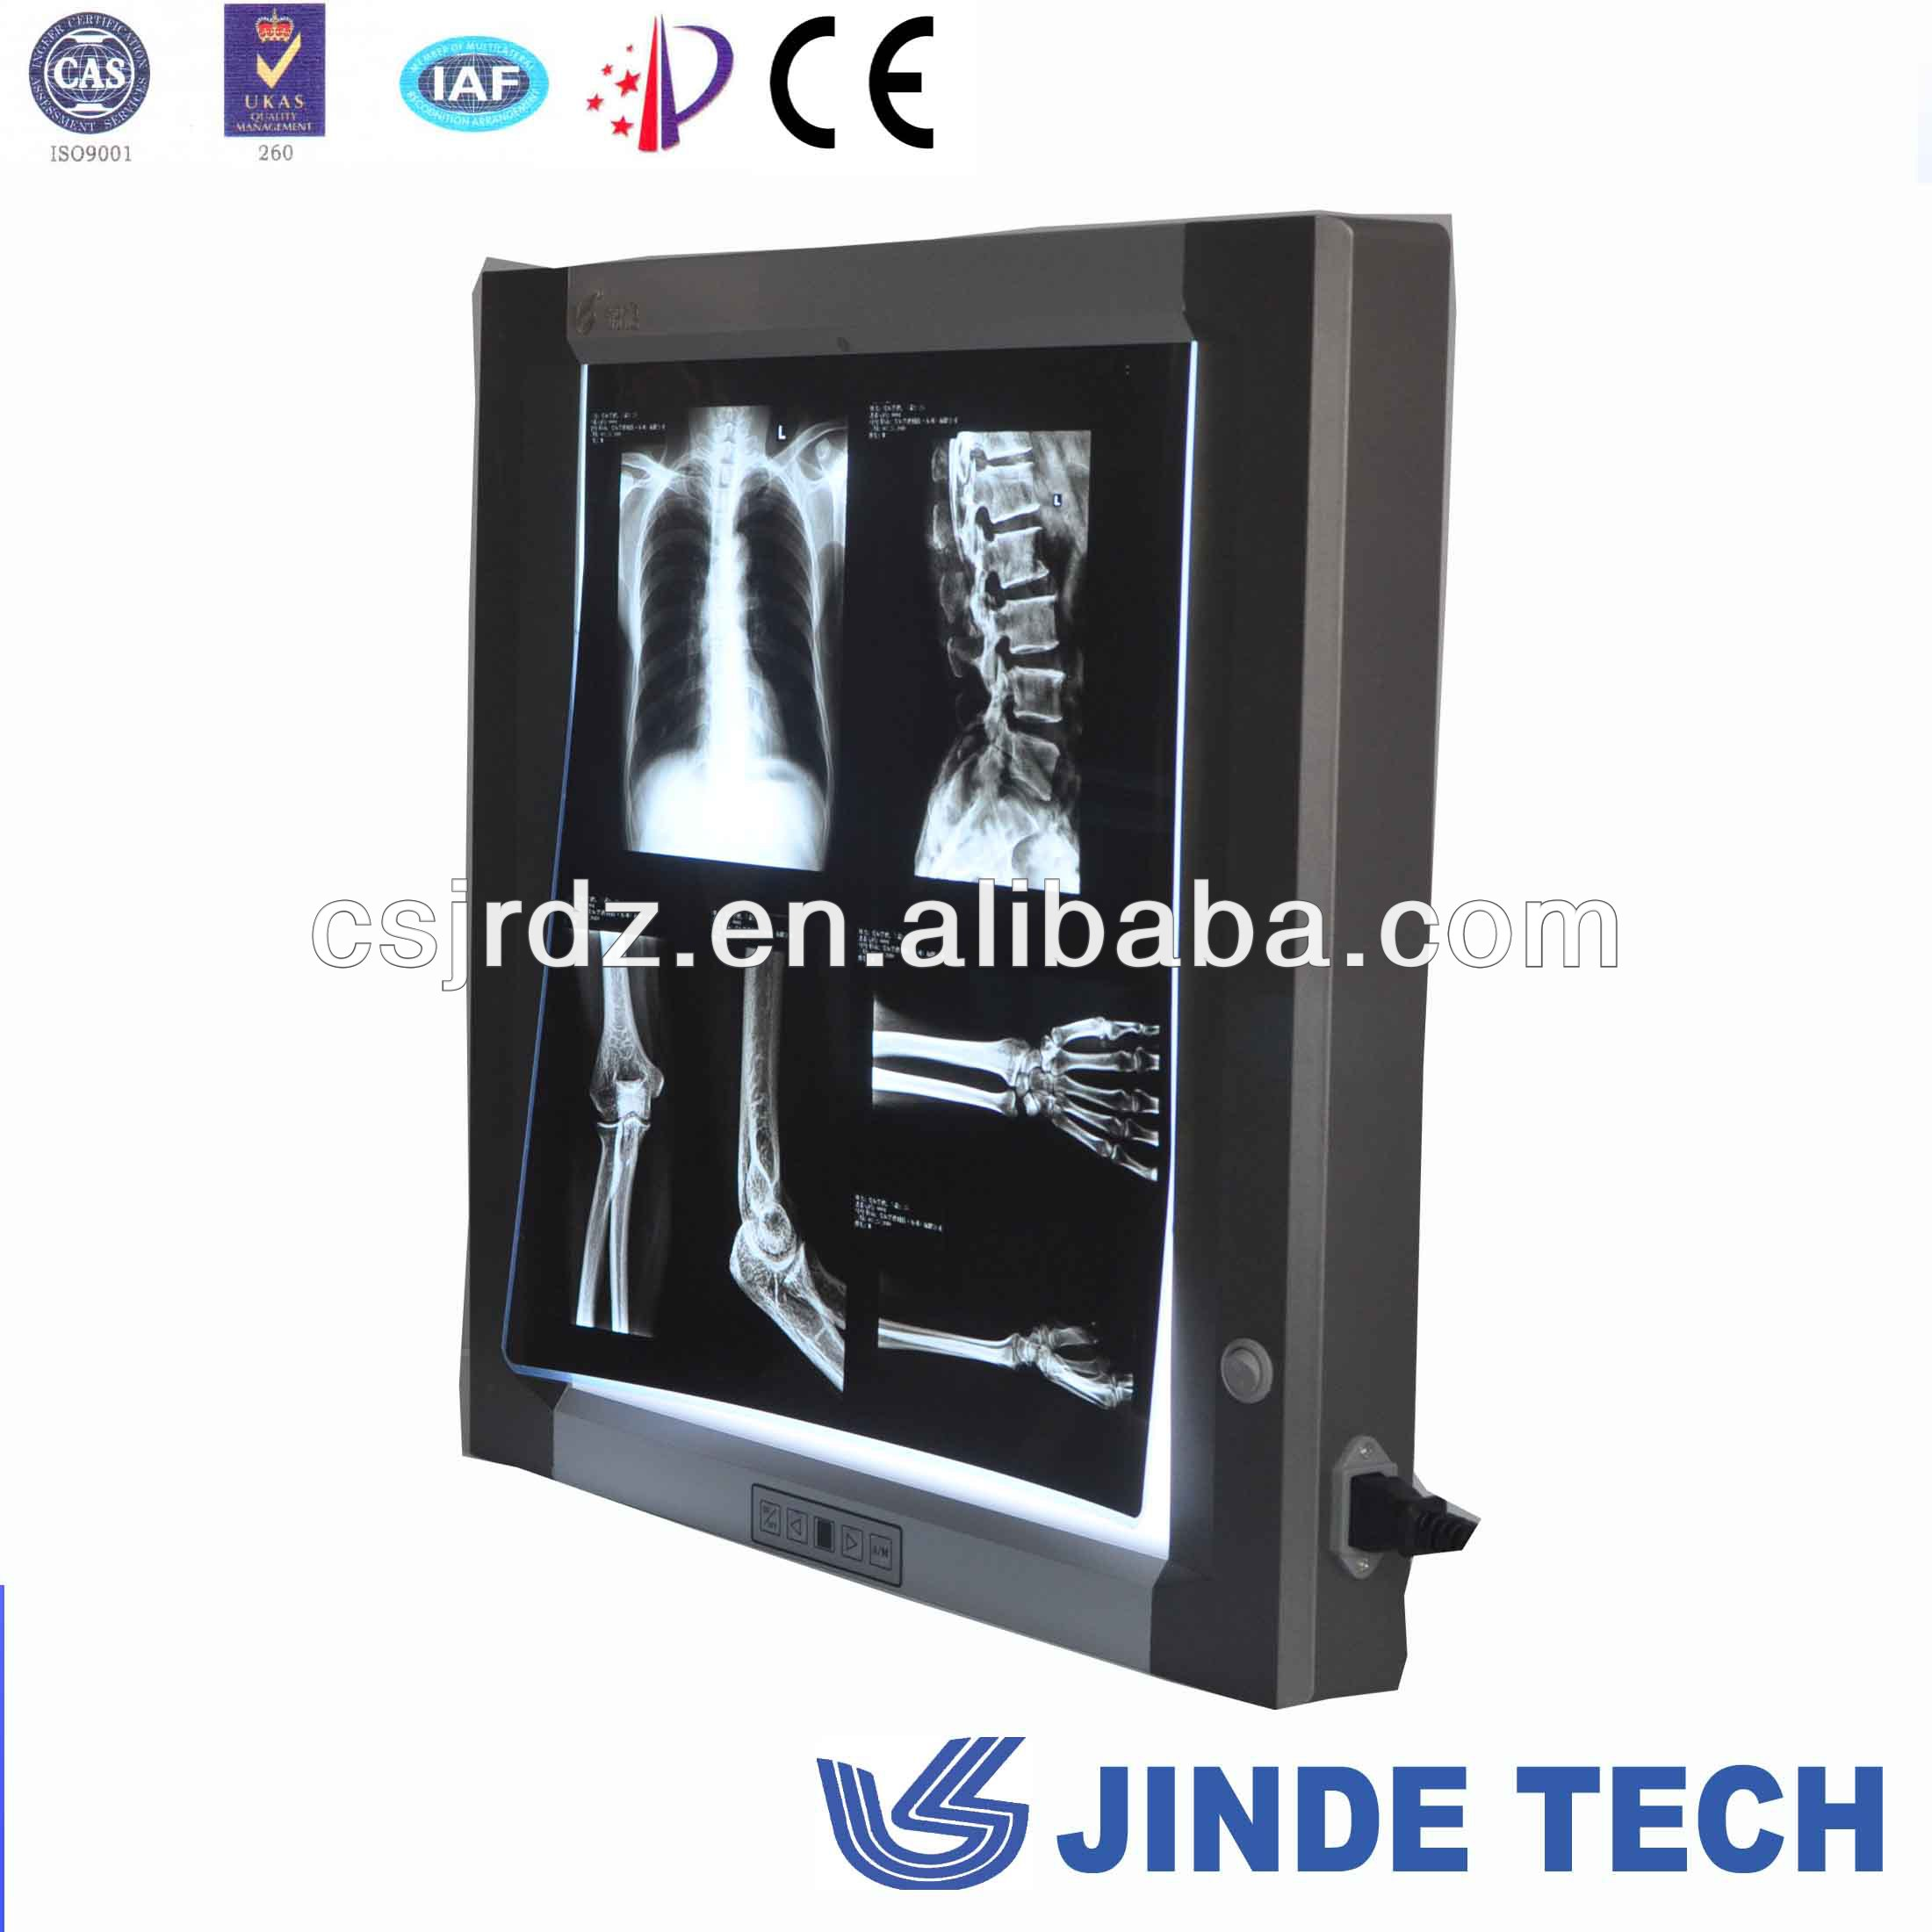 thin LED x-ray film viewer for one panel